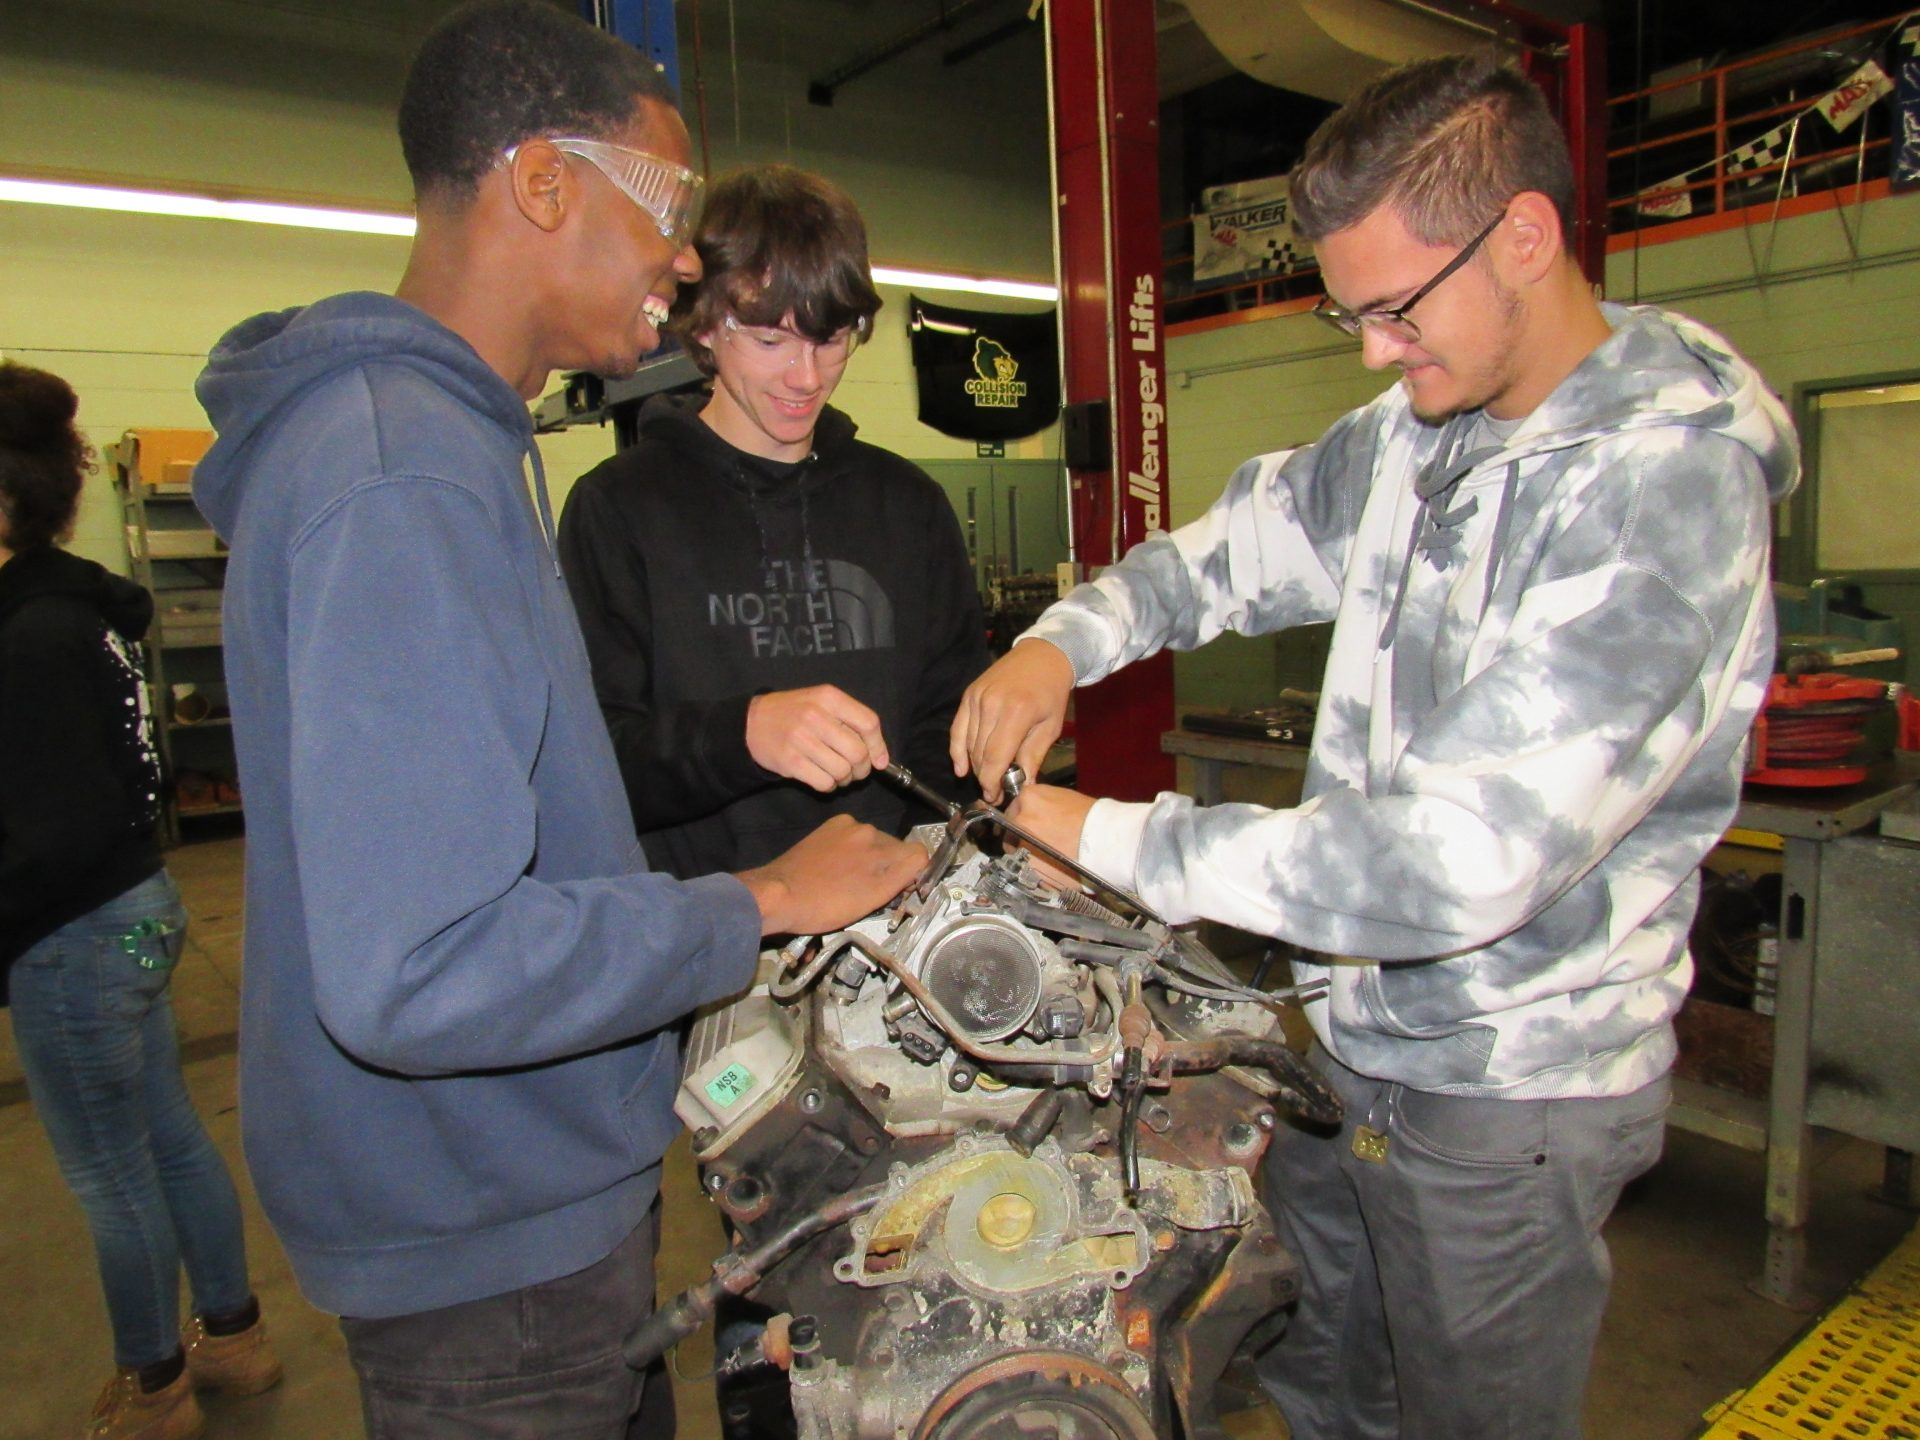 automotive students working on engine